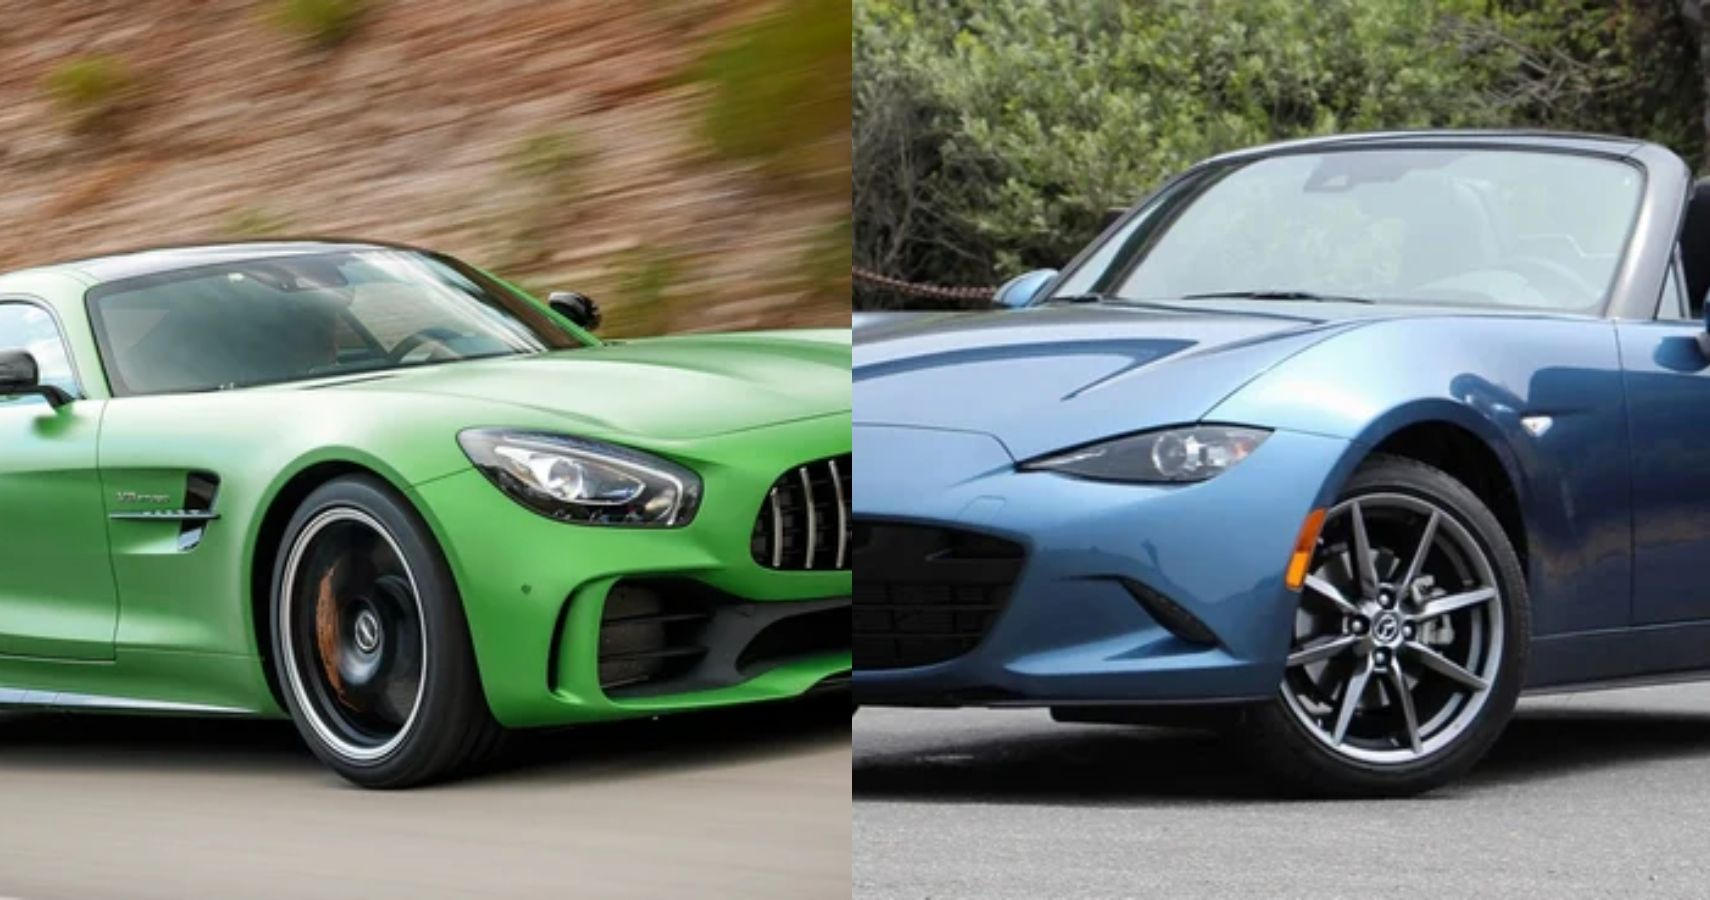 10 Best Automatic Cars That Are As Fun To Drive As A Manual